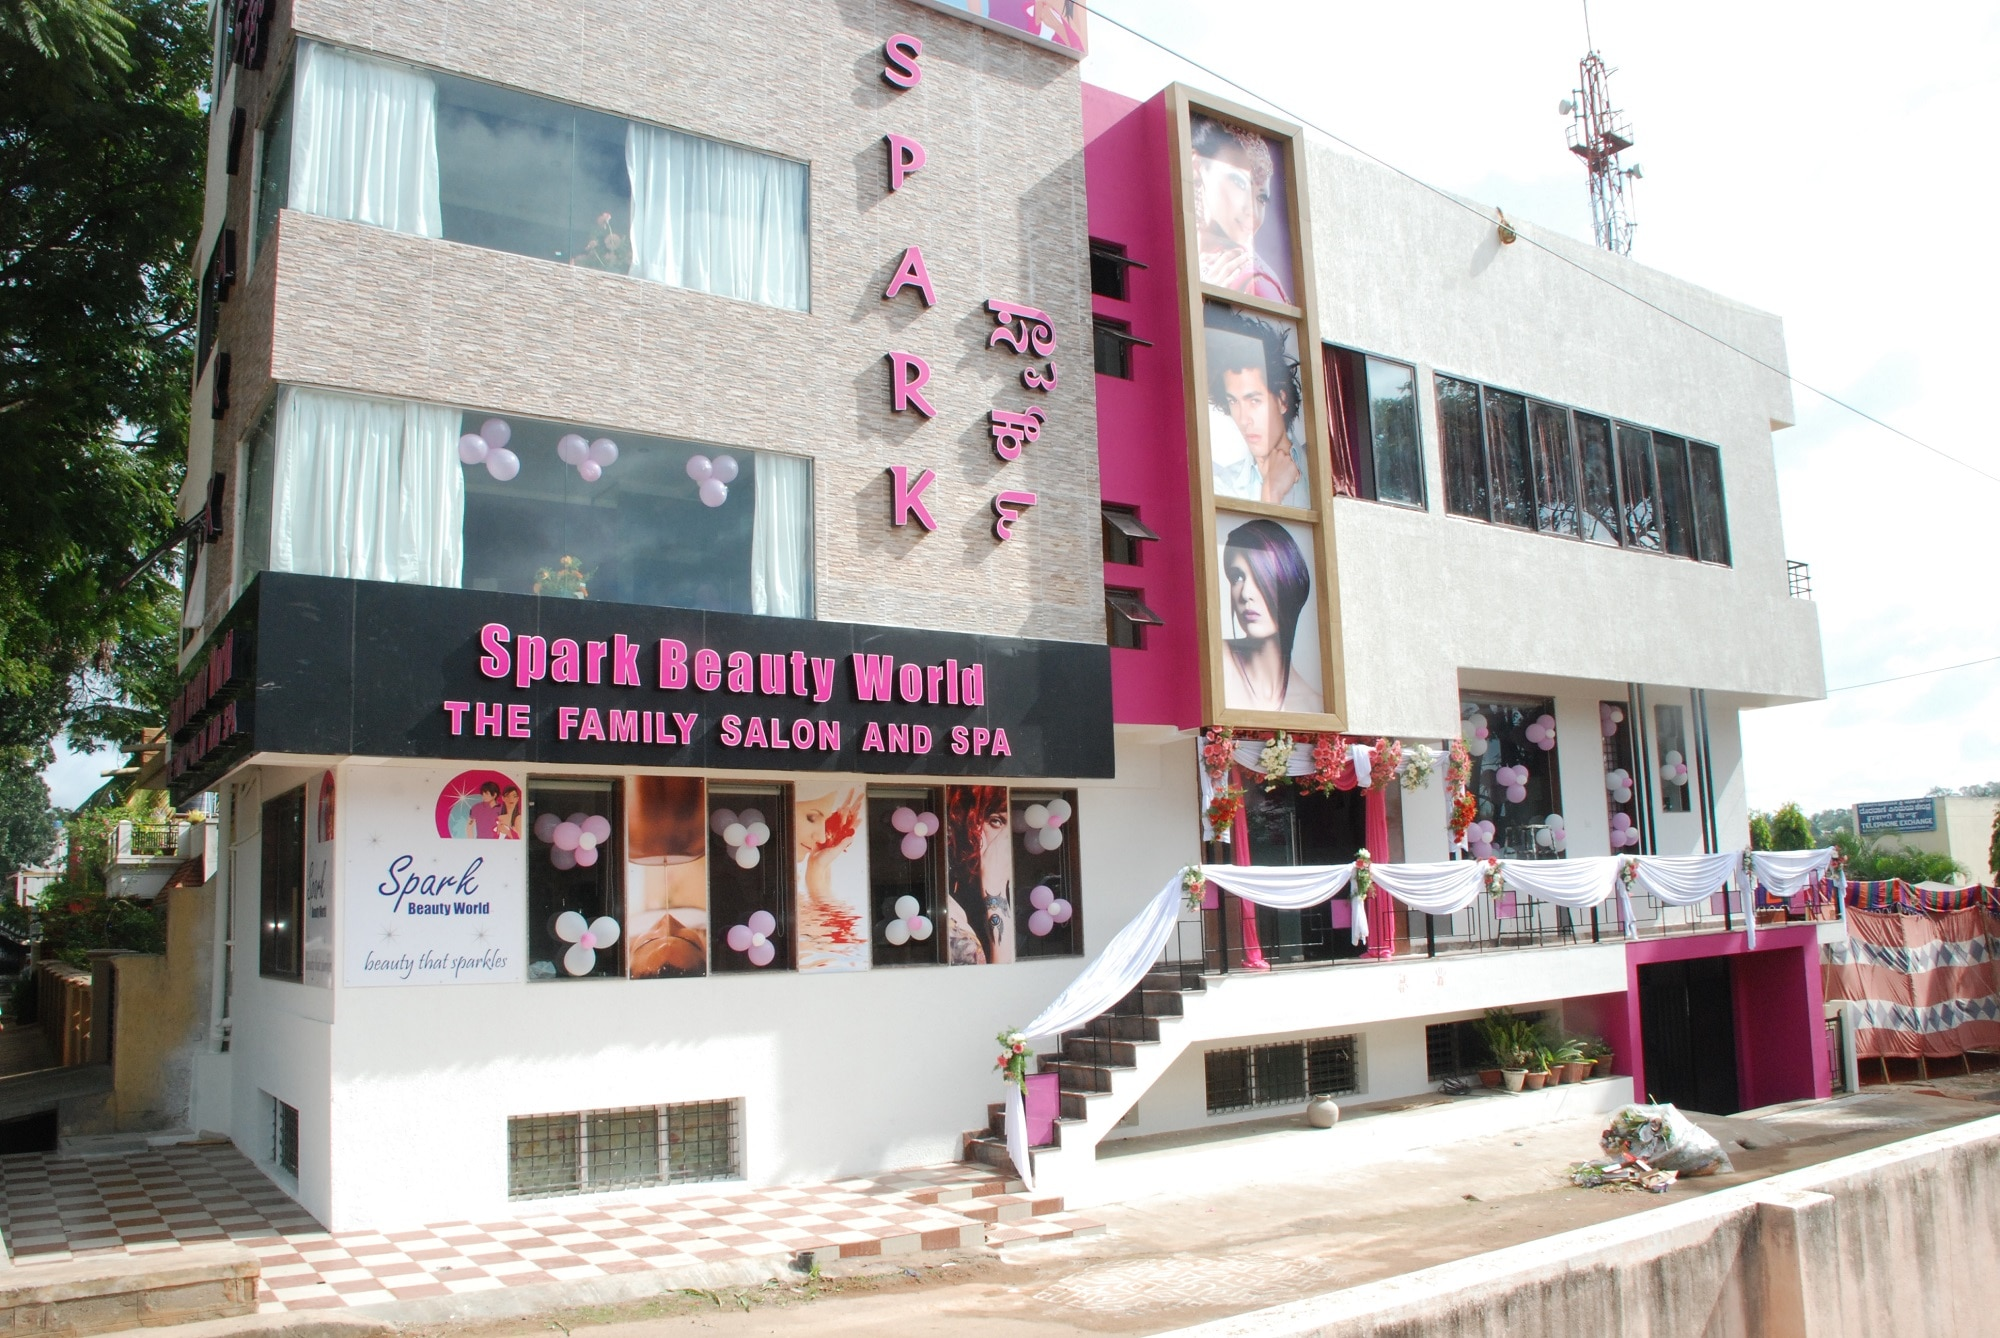 The Spark Beauty World Family Salon & Spa is Mysor